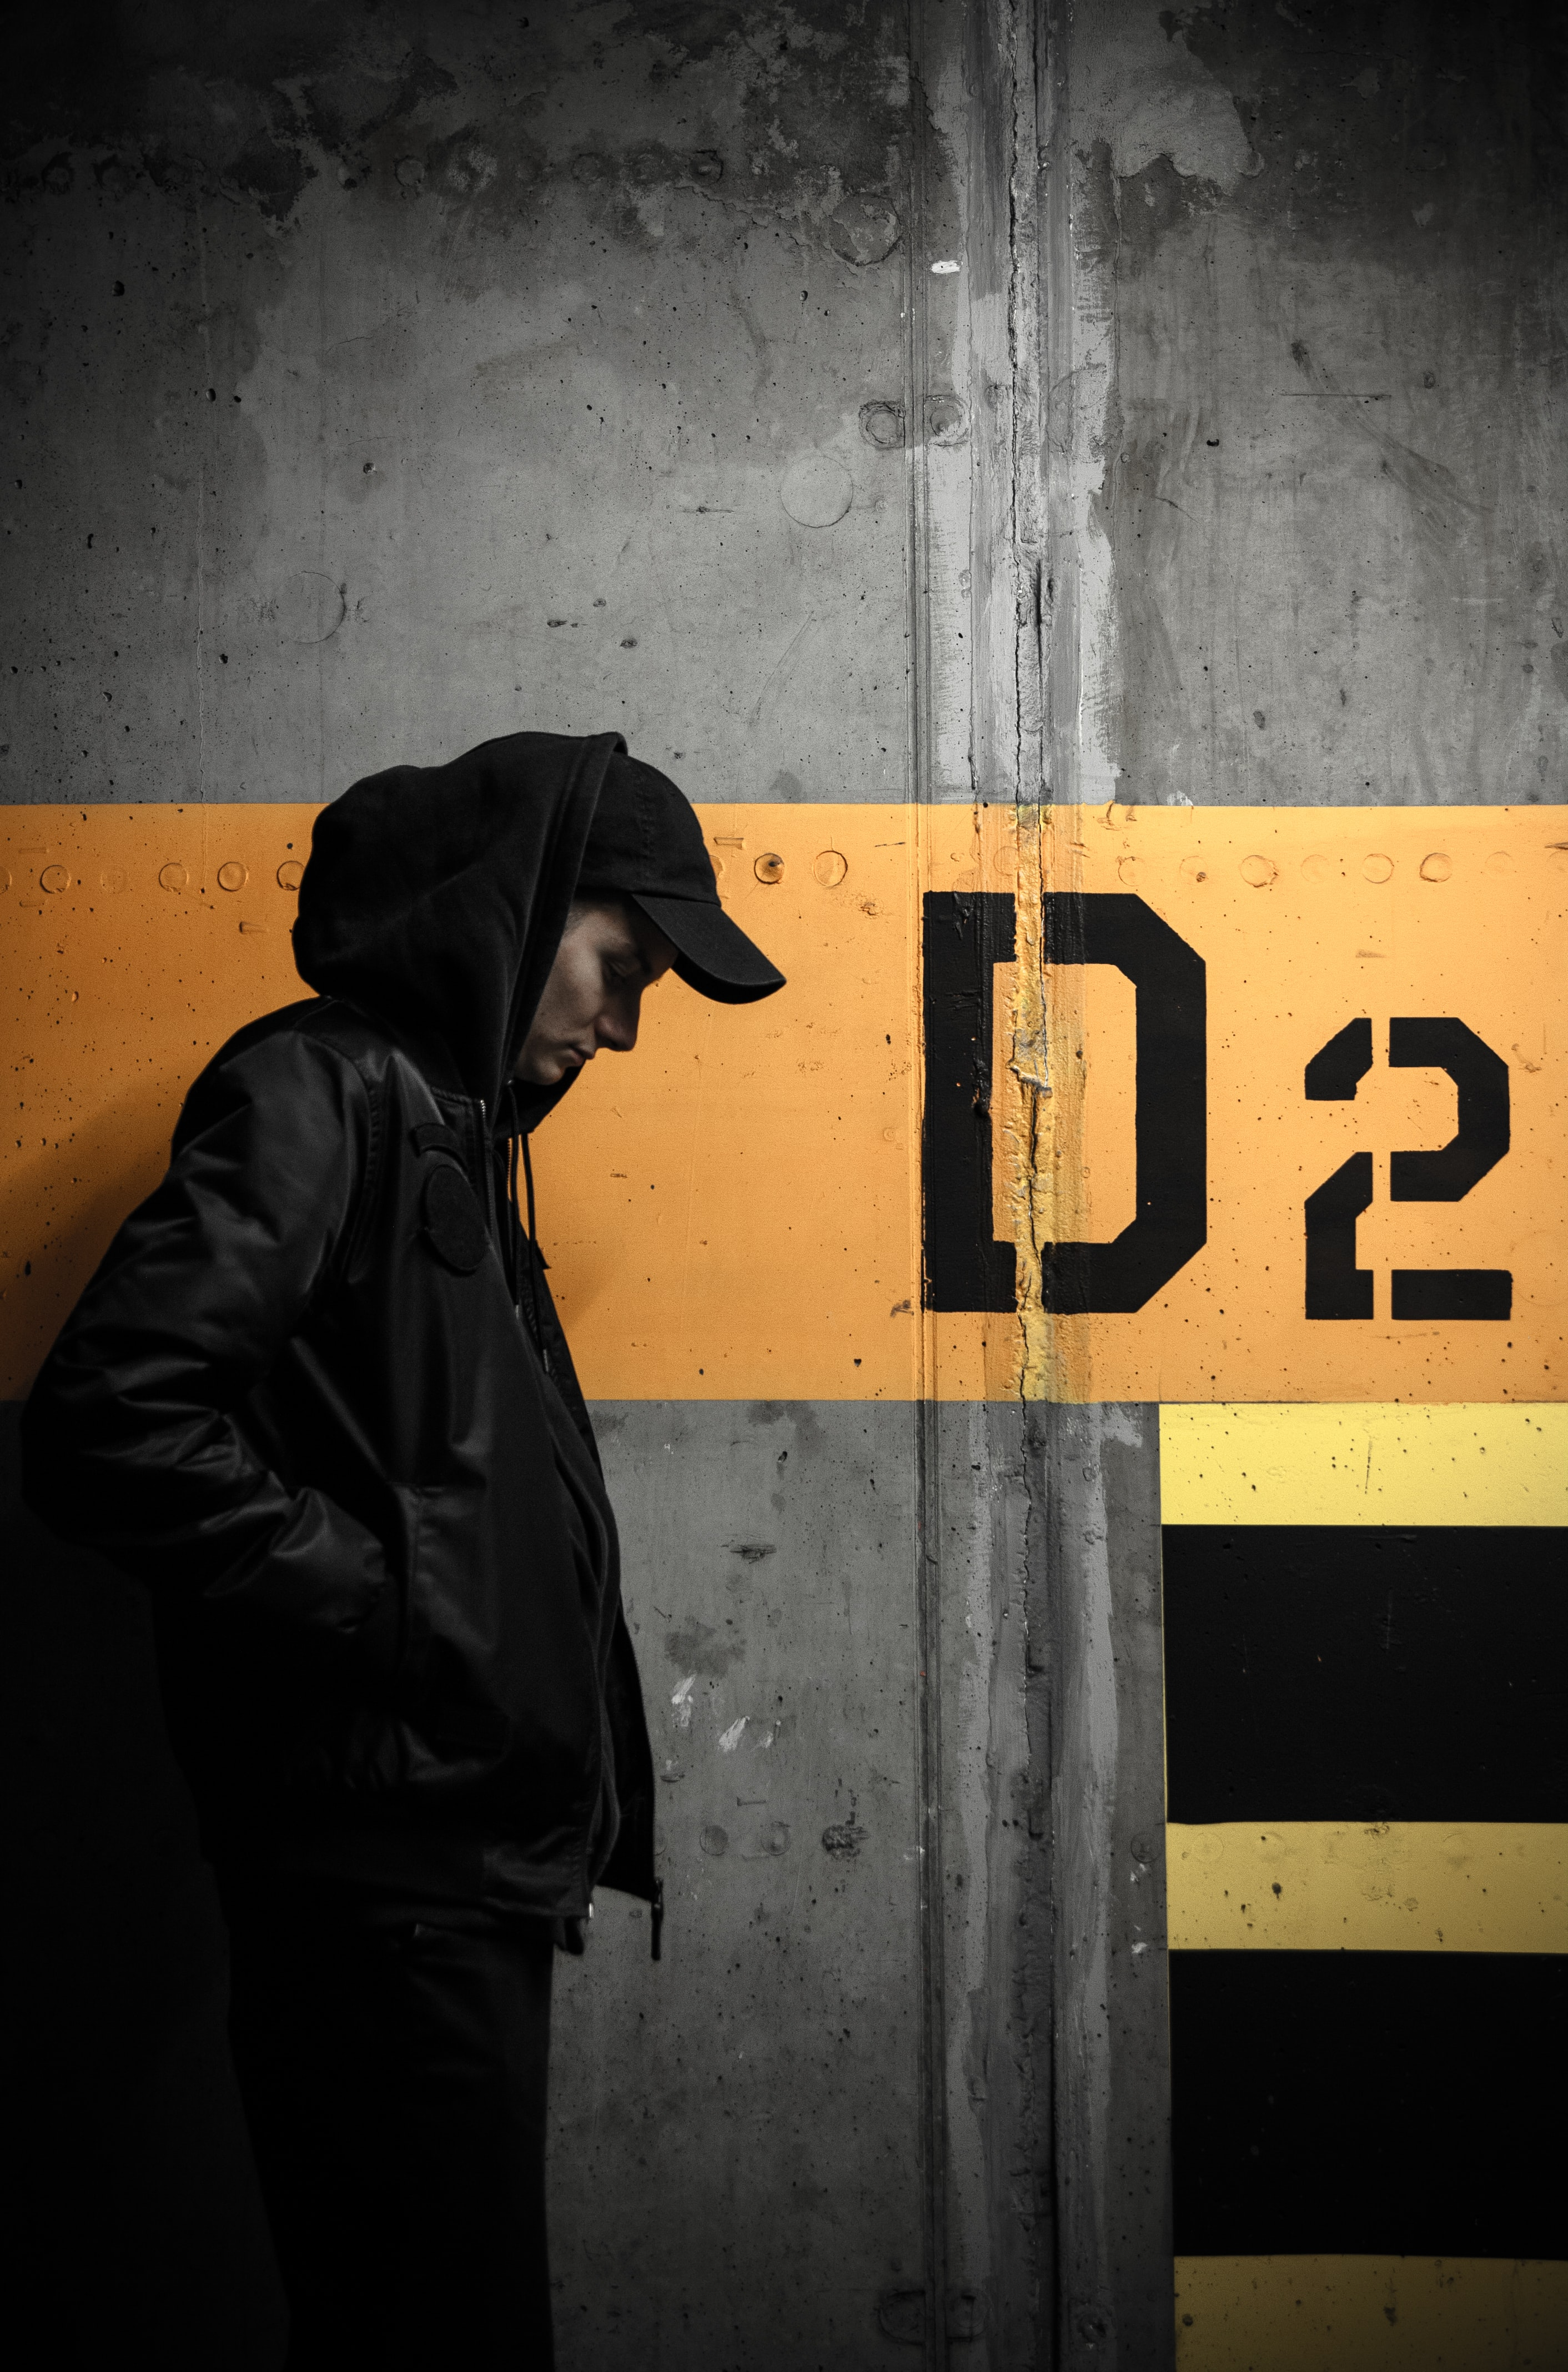 Man with hoodie and cap standing next to a concrete wall